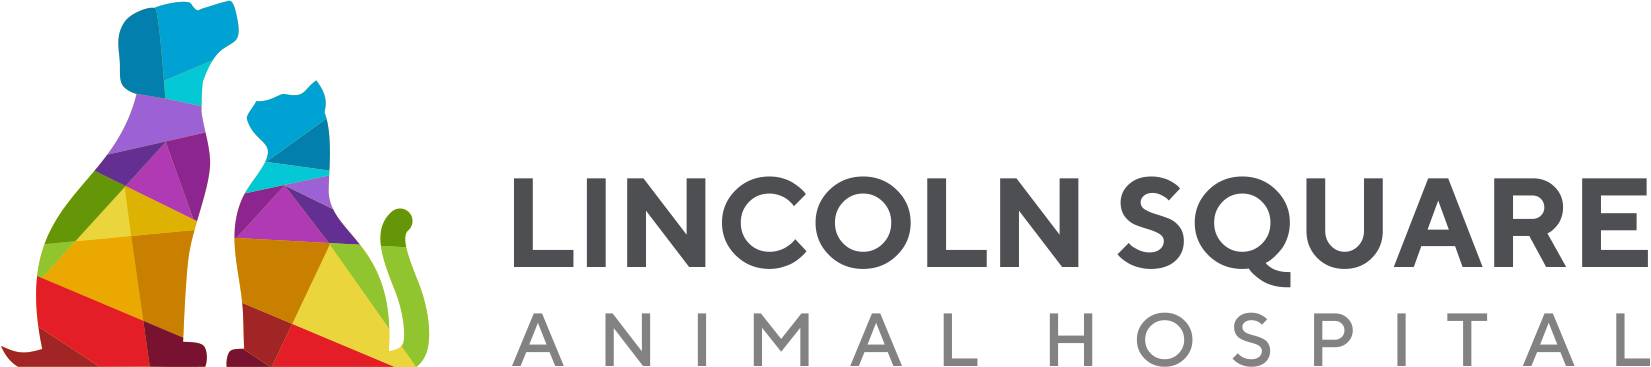 Lincoln Square Animal Hospital